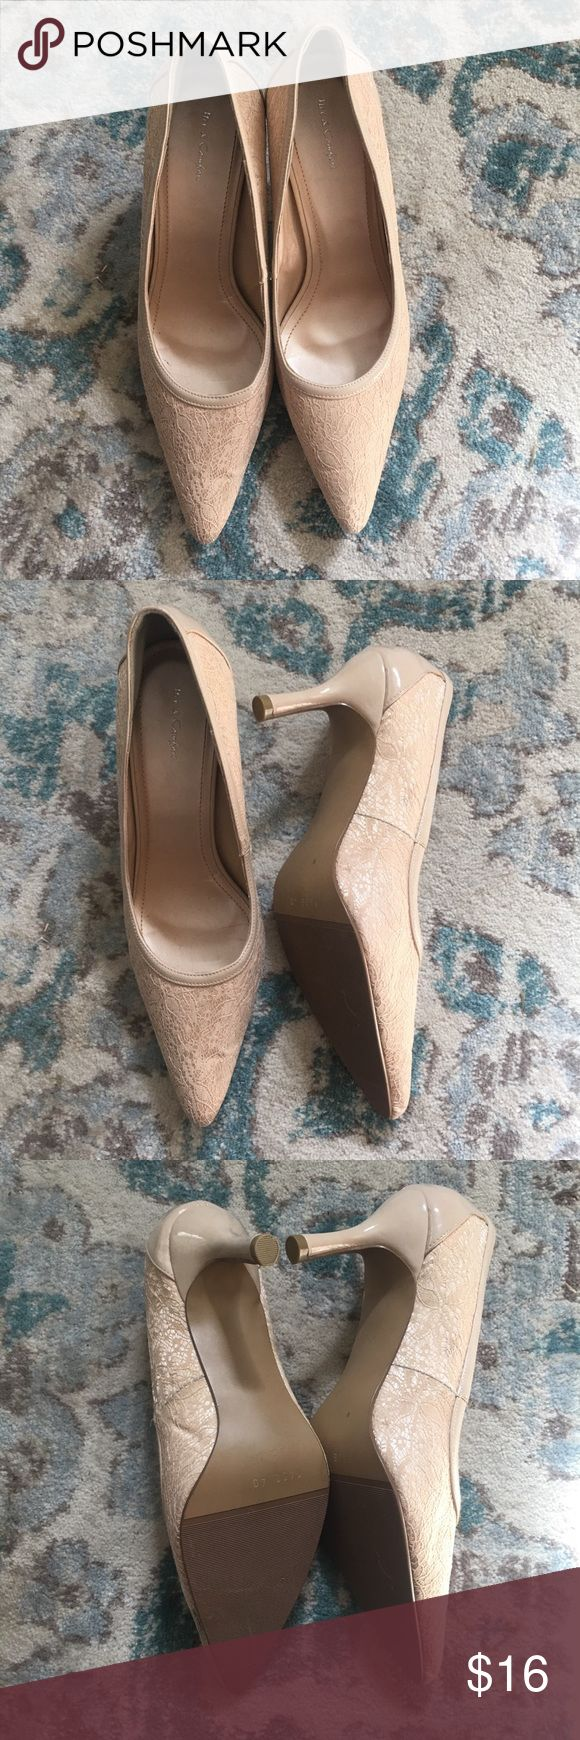 NWOT Cream lace pumps Beautiful and classy cream pumps with beautiful lace detail. Bought to wear for a wedding I was in, but found a different pair of shoes to wear instead, so these have never been worn except to try on. Mix & Comfort Shoes Heels